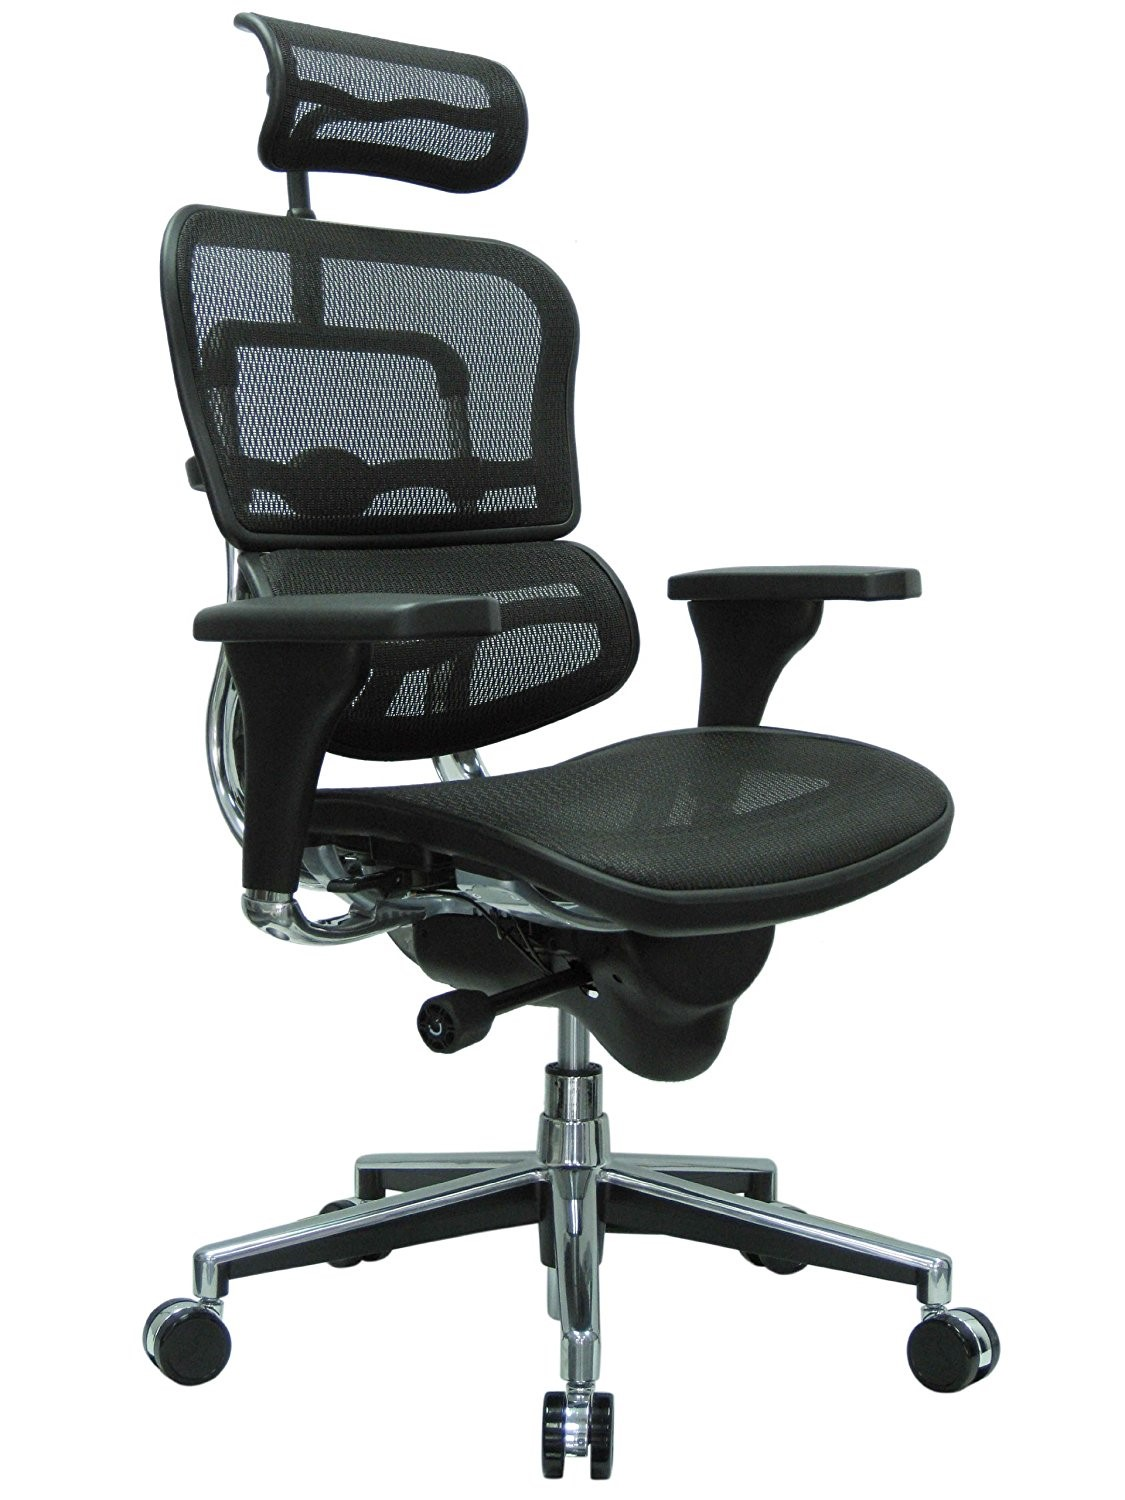 Ergo human Mesh high back ergonomic chair - $619